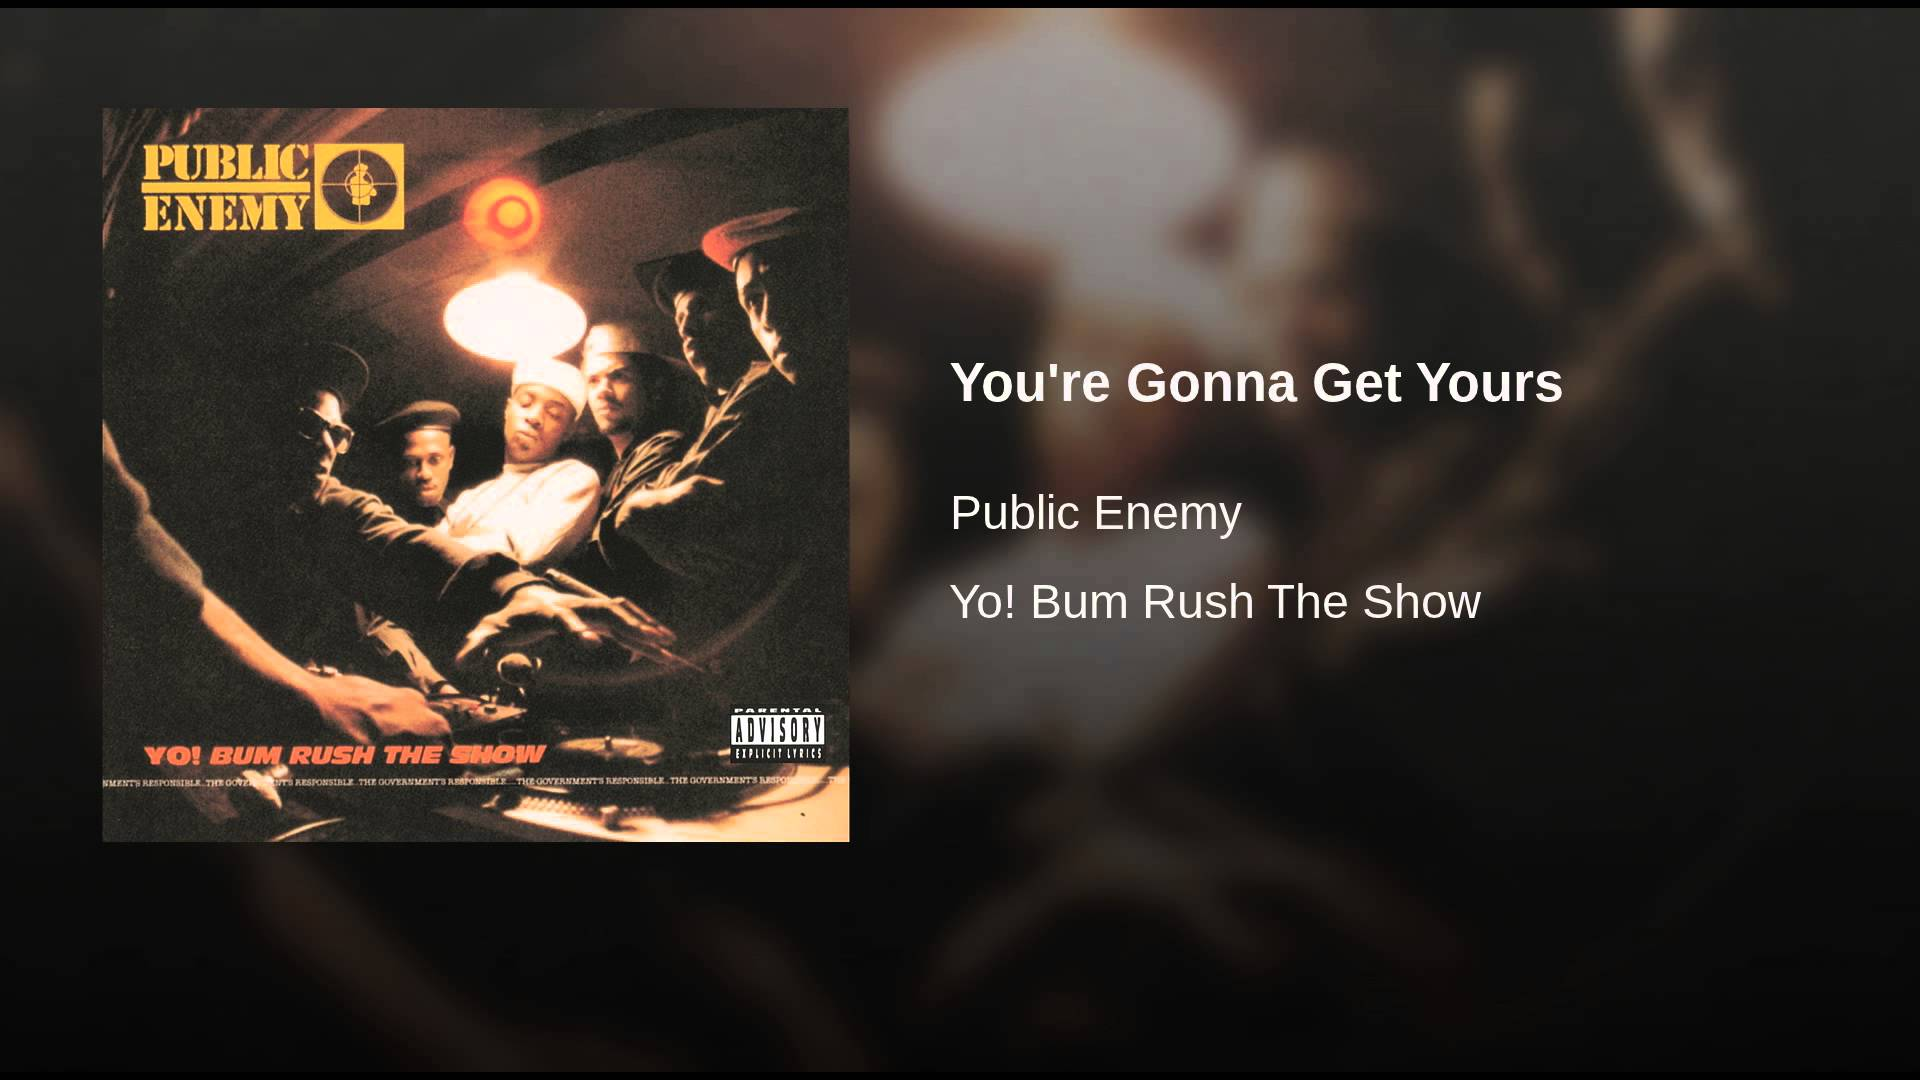 Public Enemy – You're Gonna Get Yours